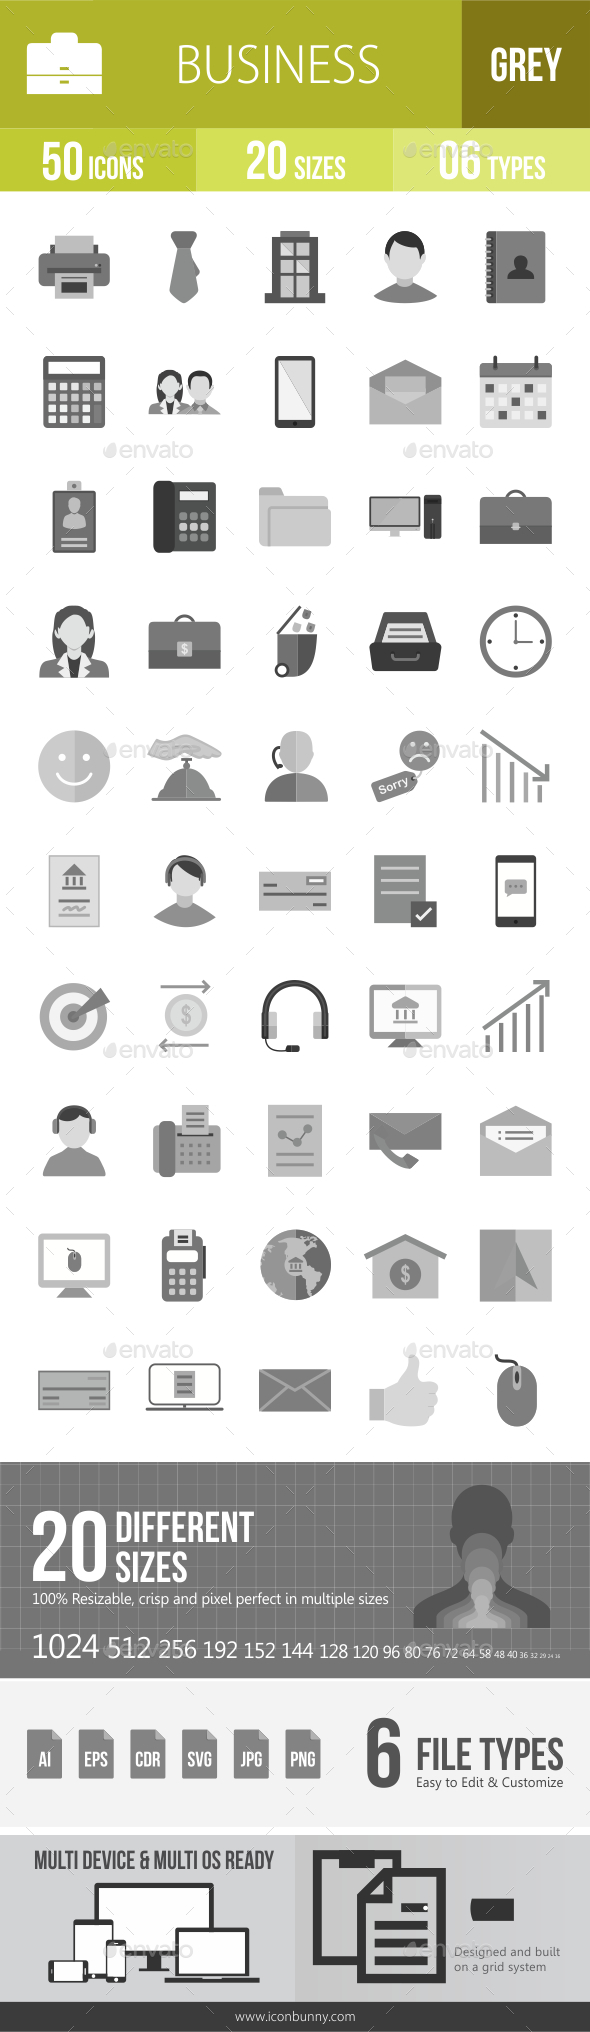 50 Business & Finance Grey Scale Icons - Icons